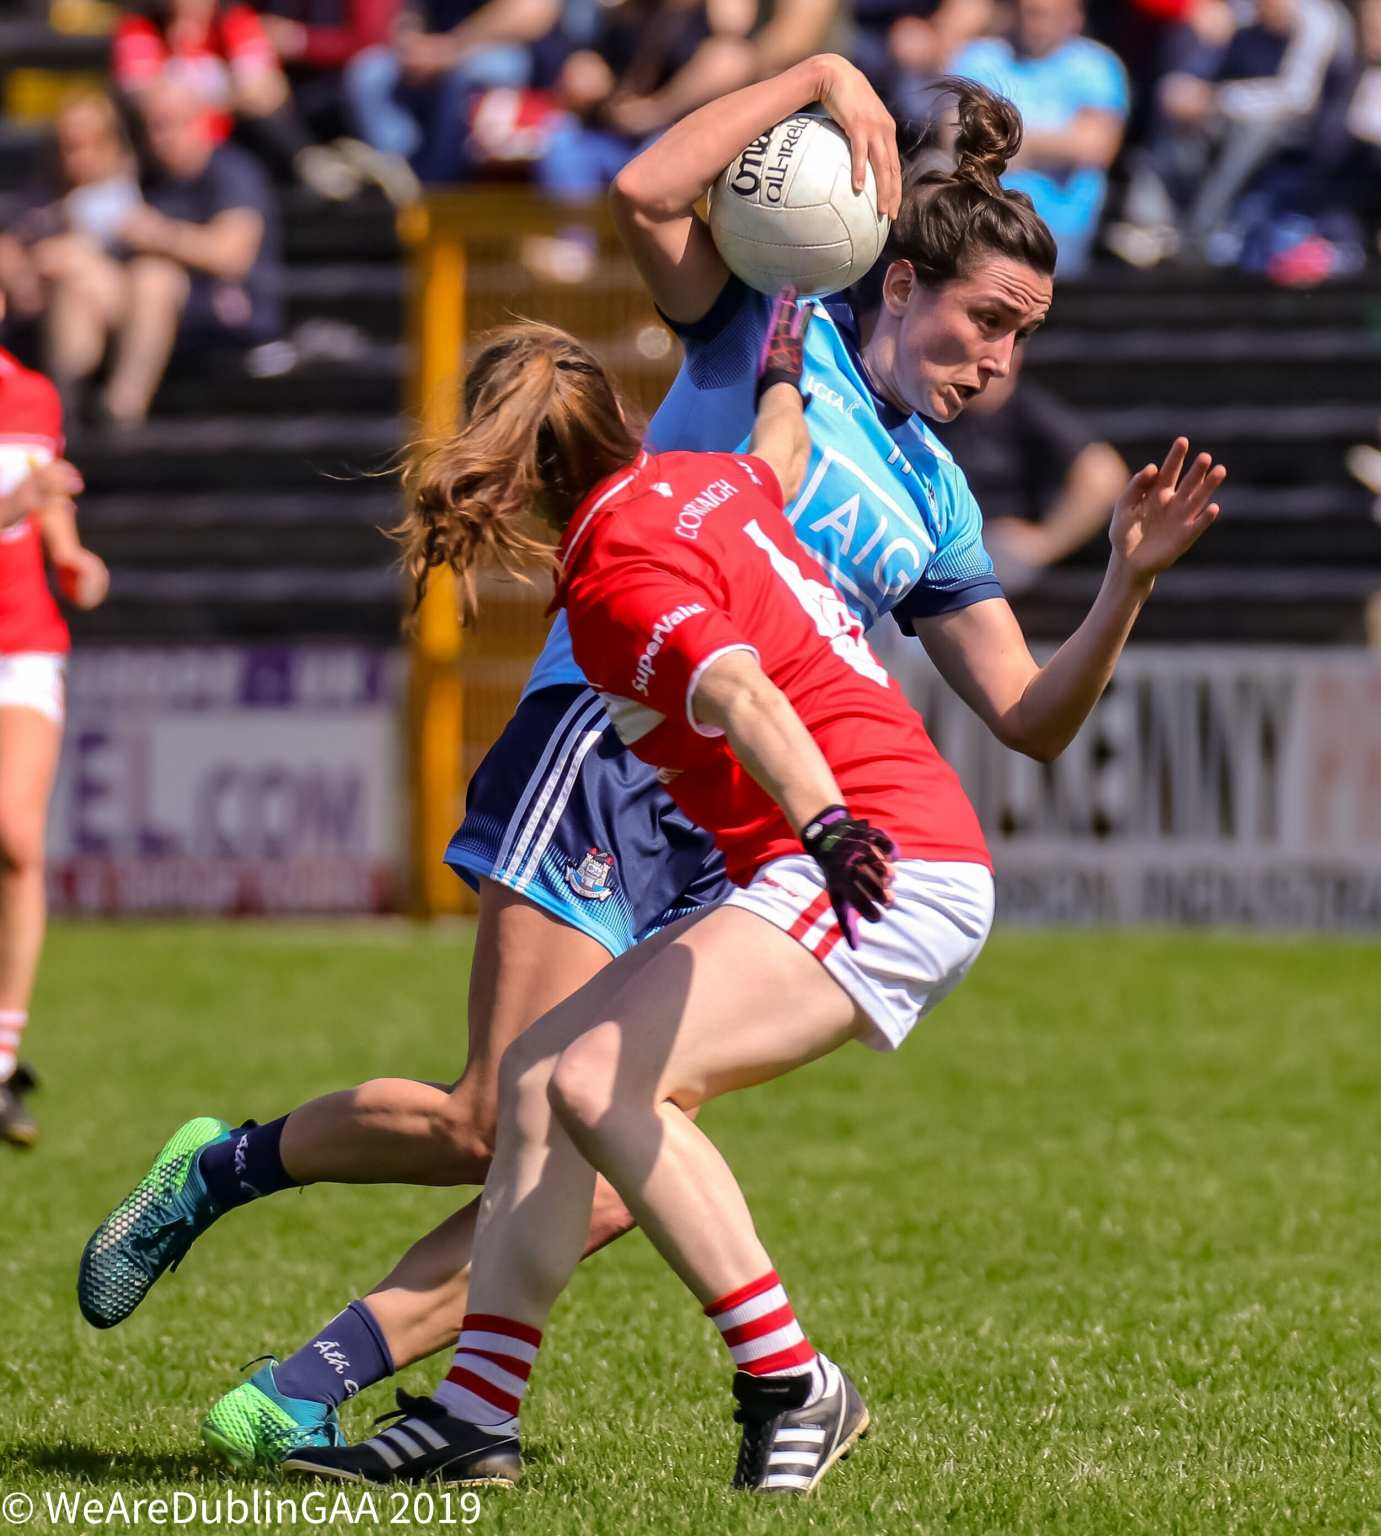 Dublin's Niamh McEvoy evades a tackle from a Cork player, both sides meet in the TG4 All Ireland Senior Ladies Football championship semi final this weekend.